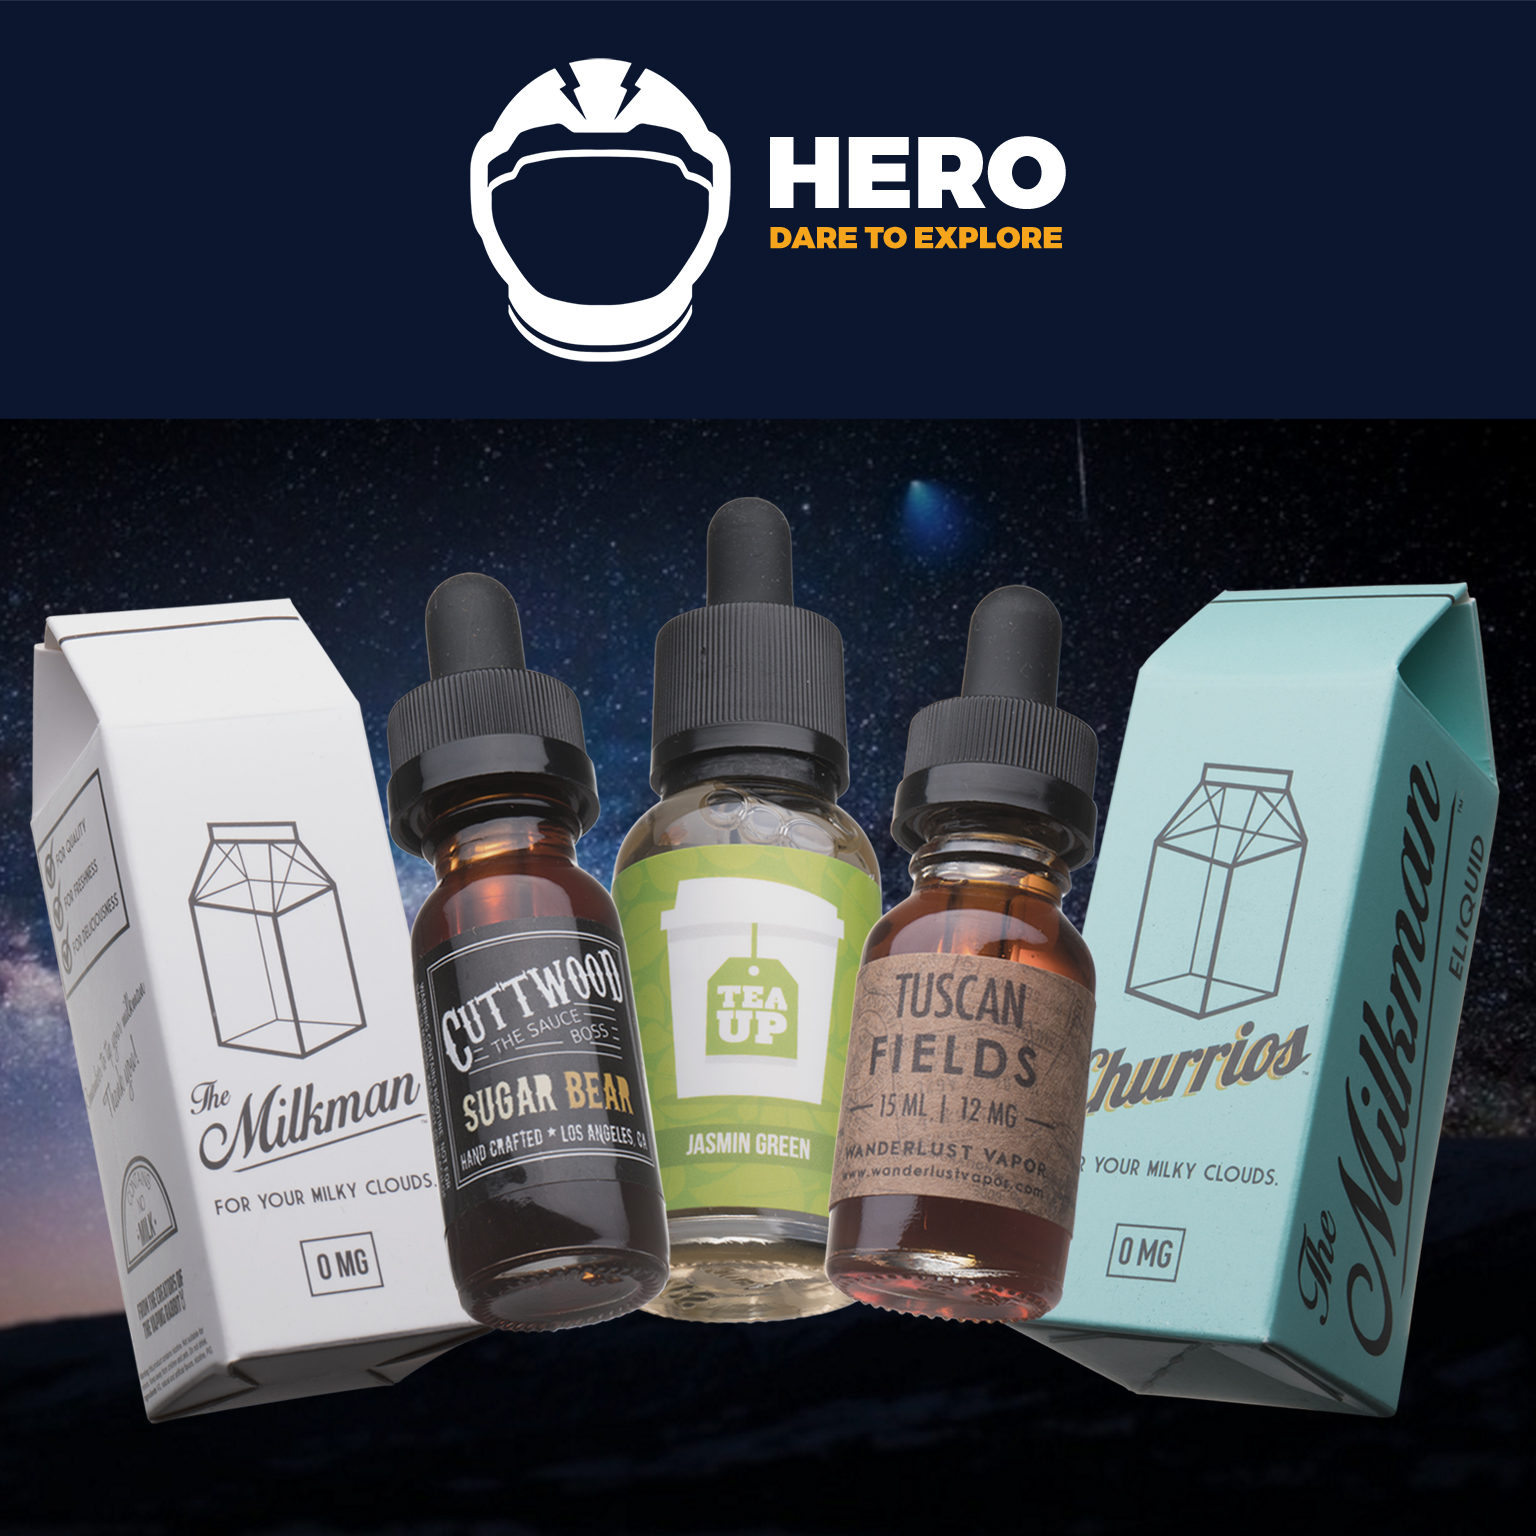 120mL SUPER HERO Box | Feat. The Milkman, Churrios by The Milkman, Jasmine Green Tea by Tea Up Vapory, Sugar Drizzle by Cuttwood, and Tuscan Fields by Wanderlust Vapor Photo